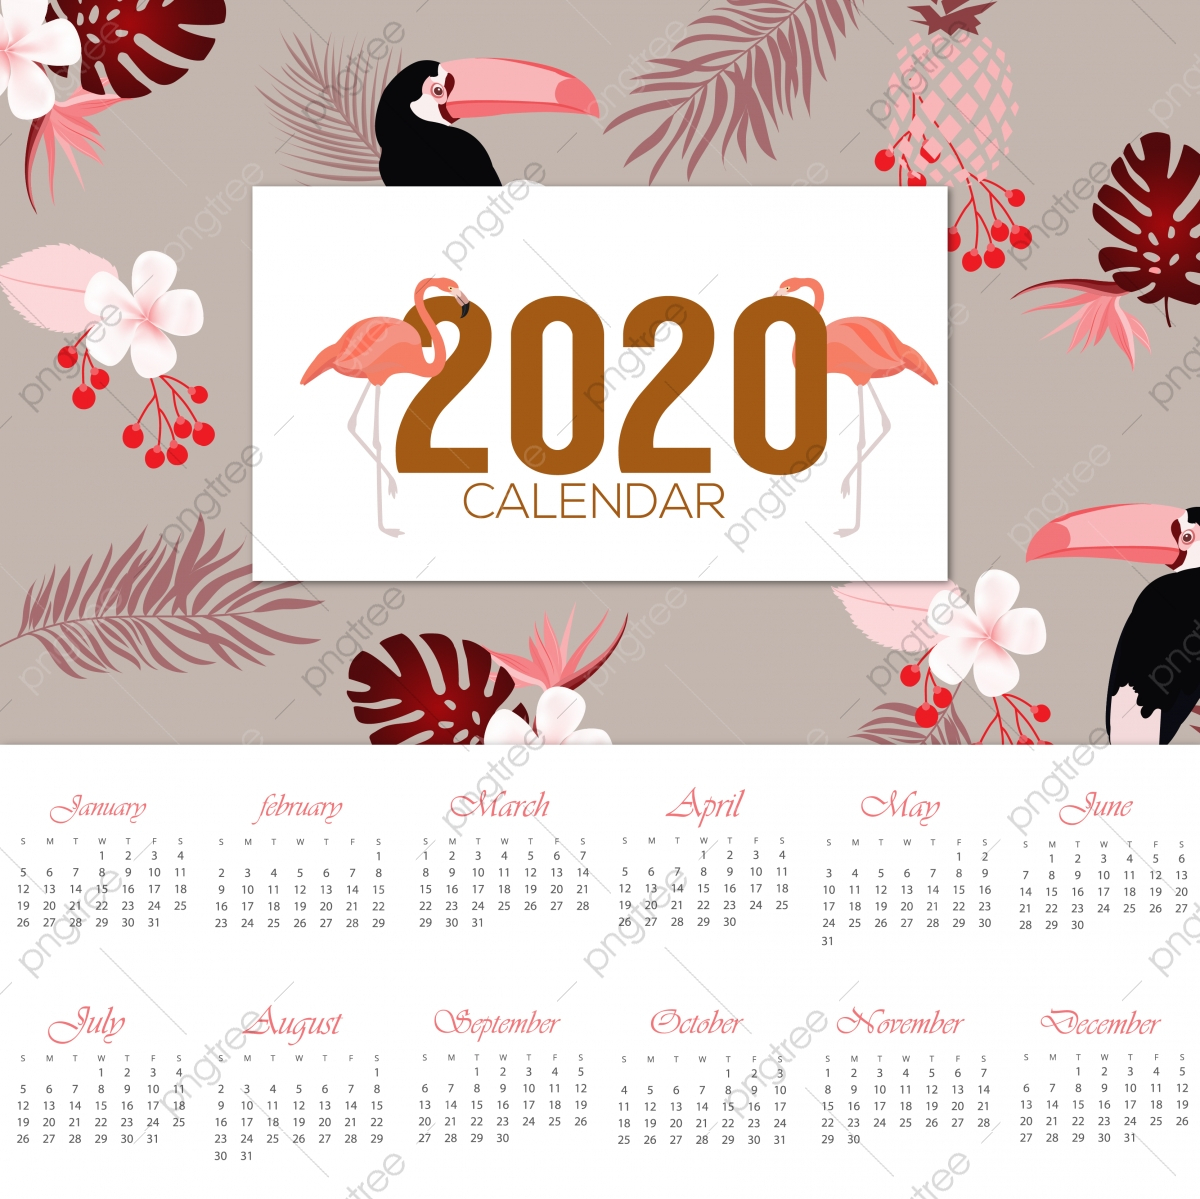 2020 Calendar Design, Calendar, Christmas, Illustration Png